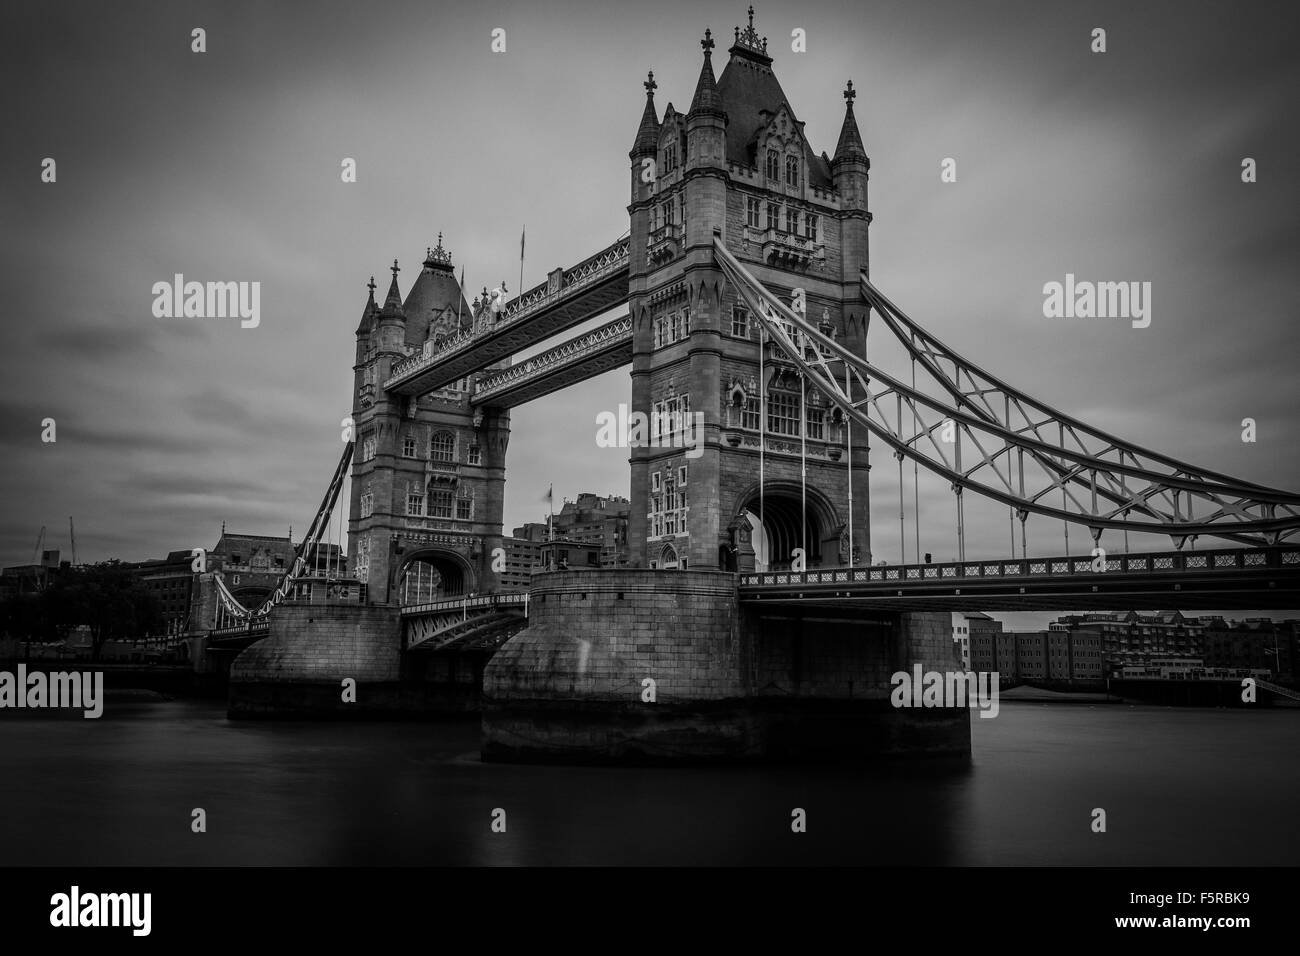 Tower Bridge B&W - Stock Image